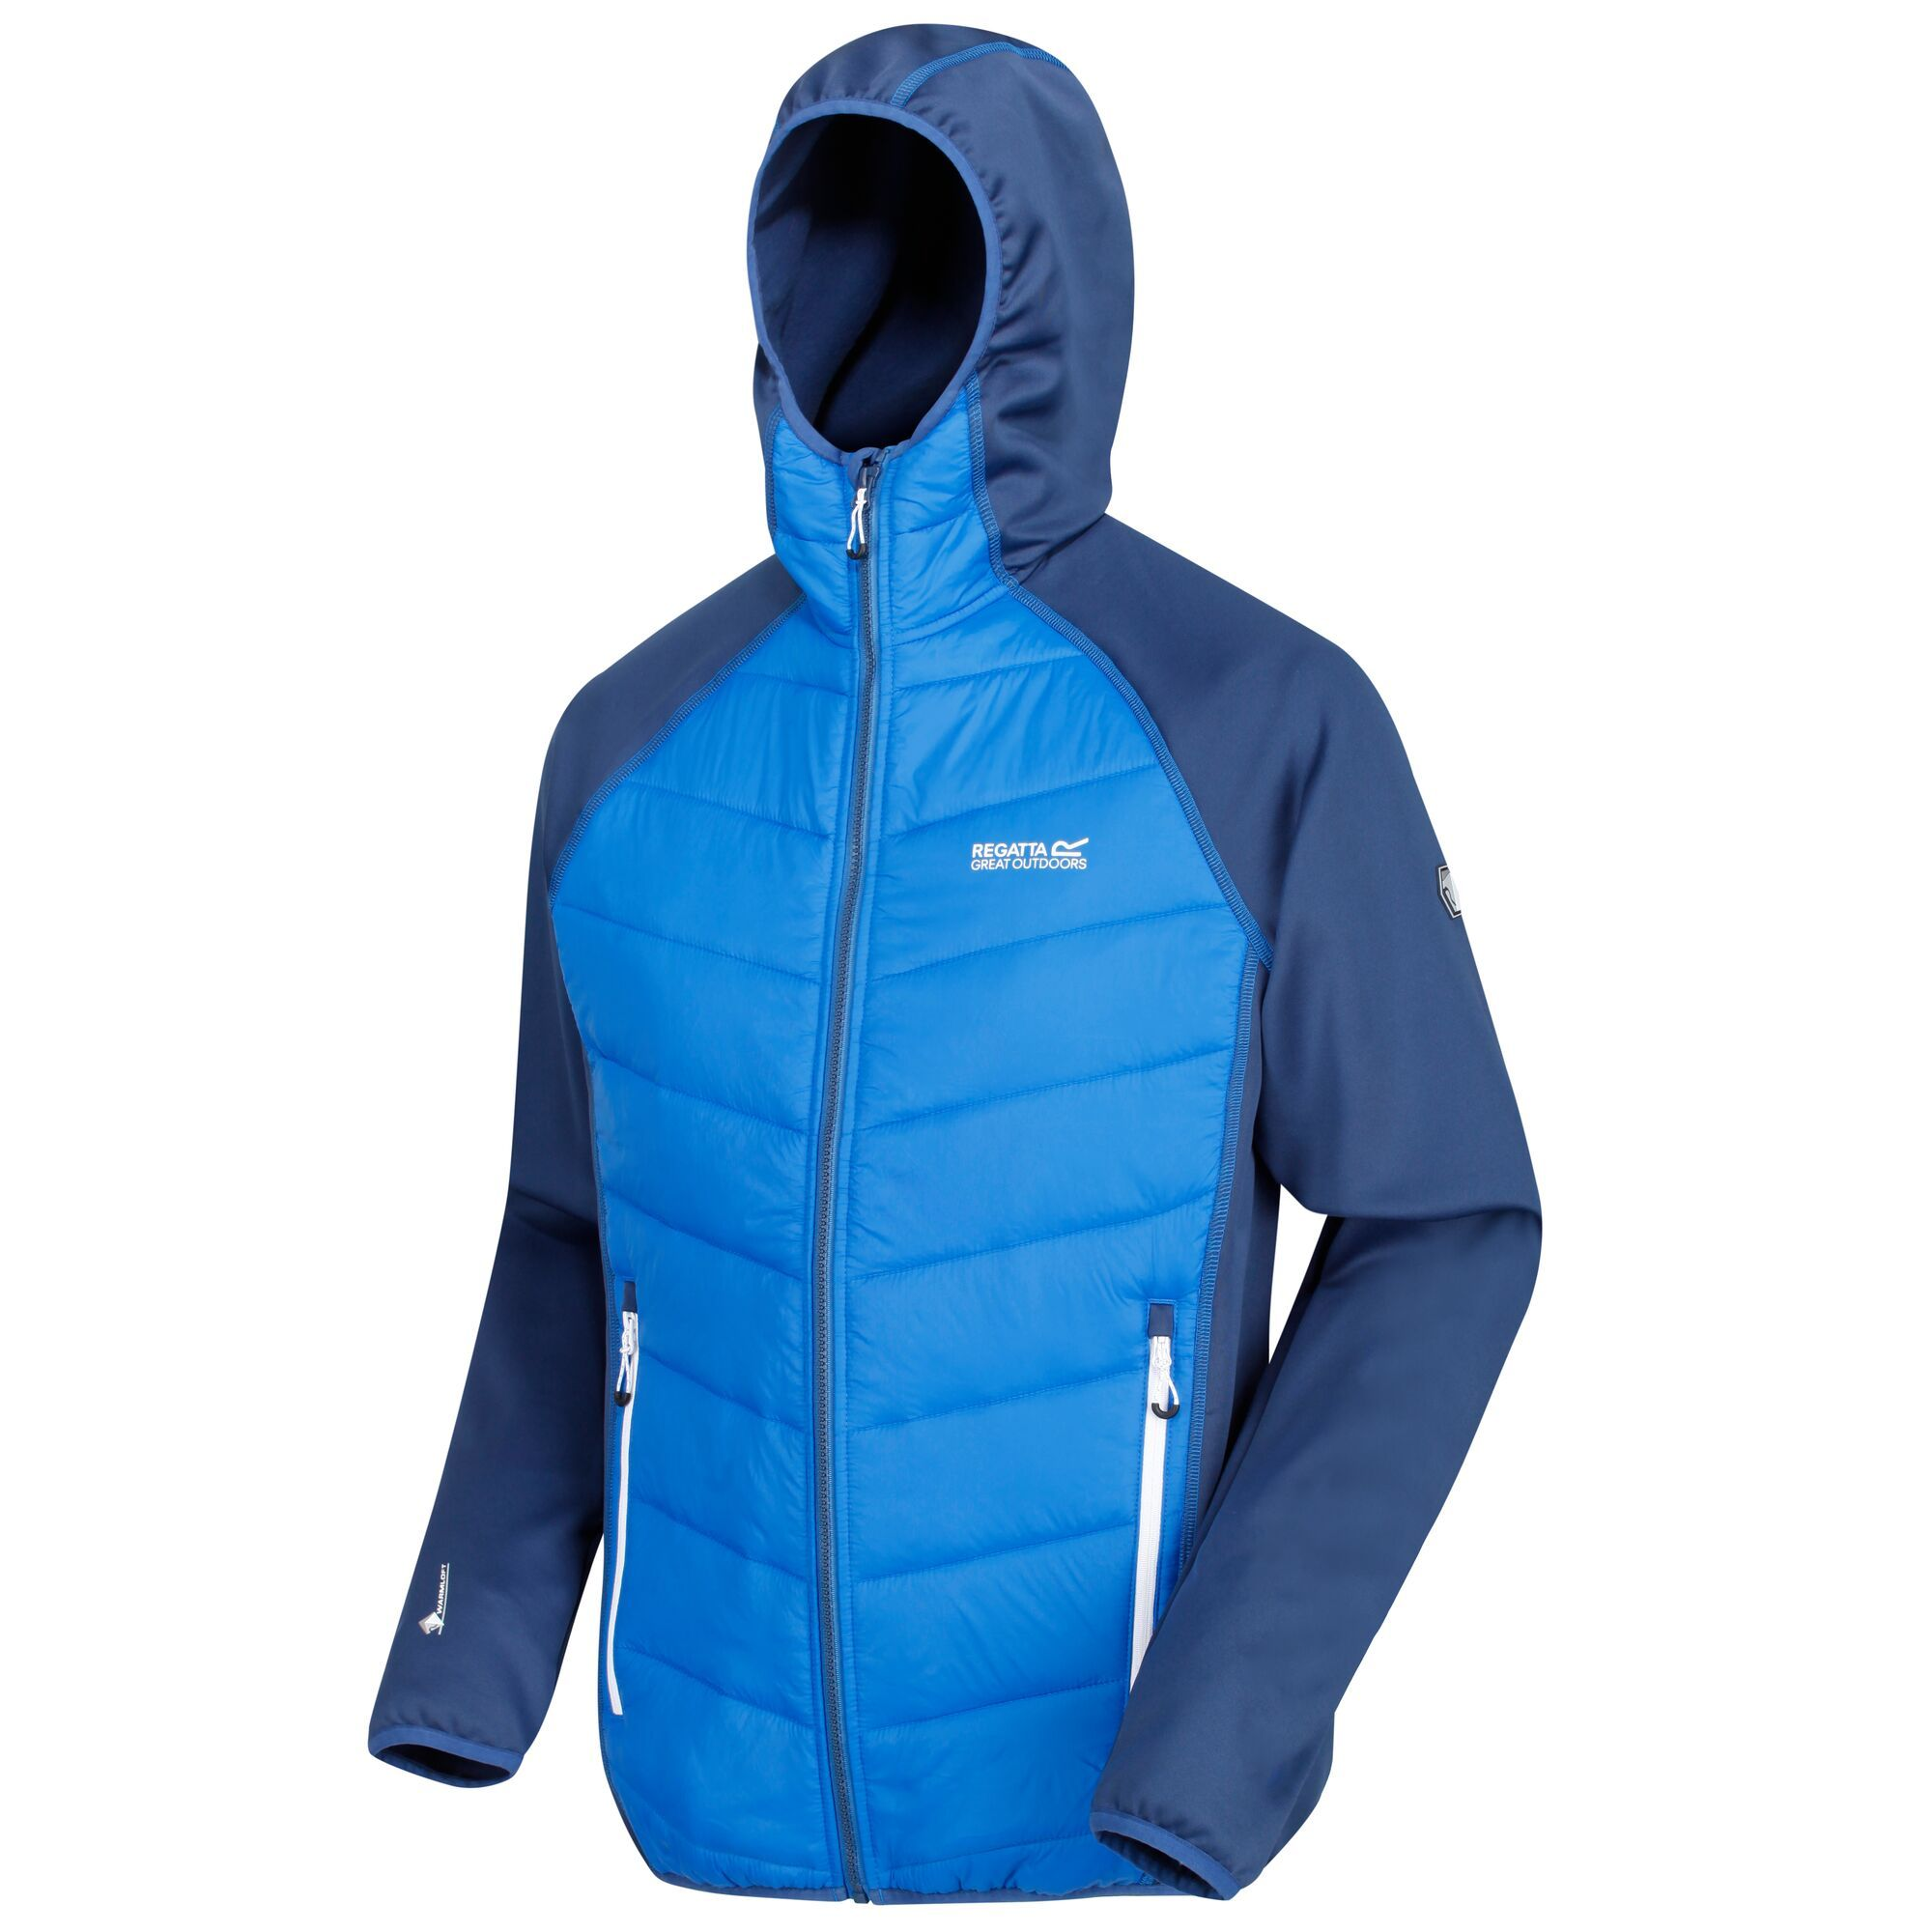 Regatta Andreson Lightweight Insulated Hybrid Jacket